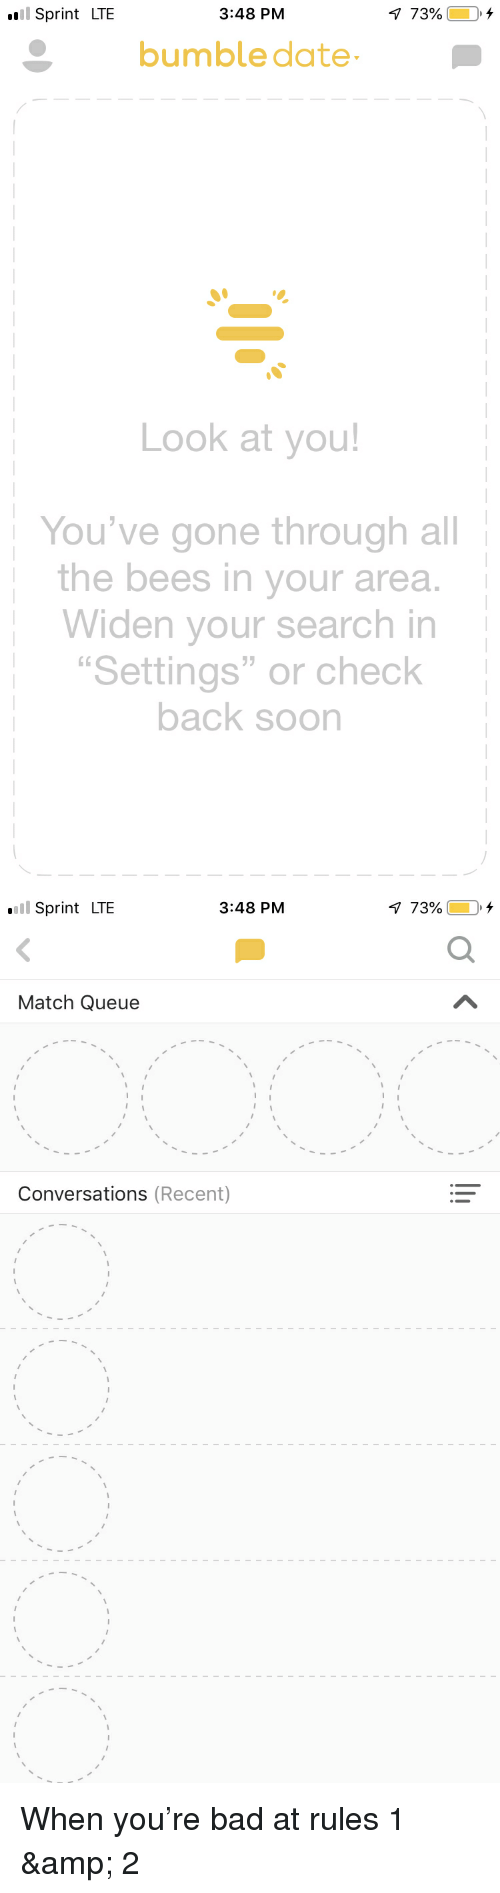 Sprint LTE 348 PM Bumble Date Look at You! You've Gone